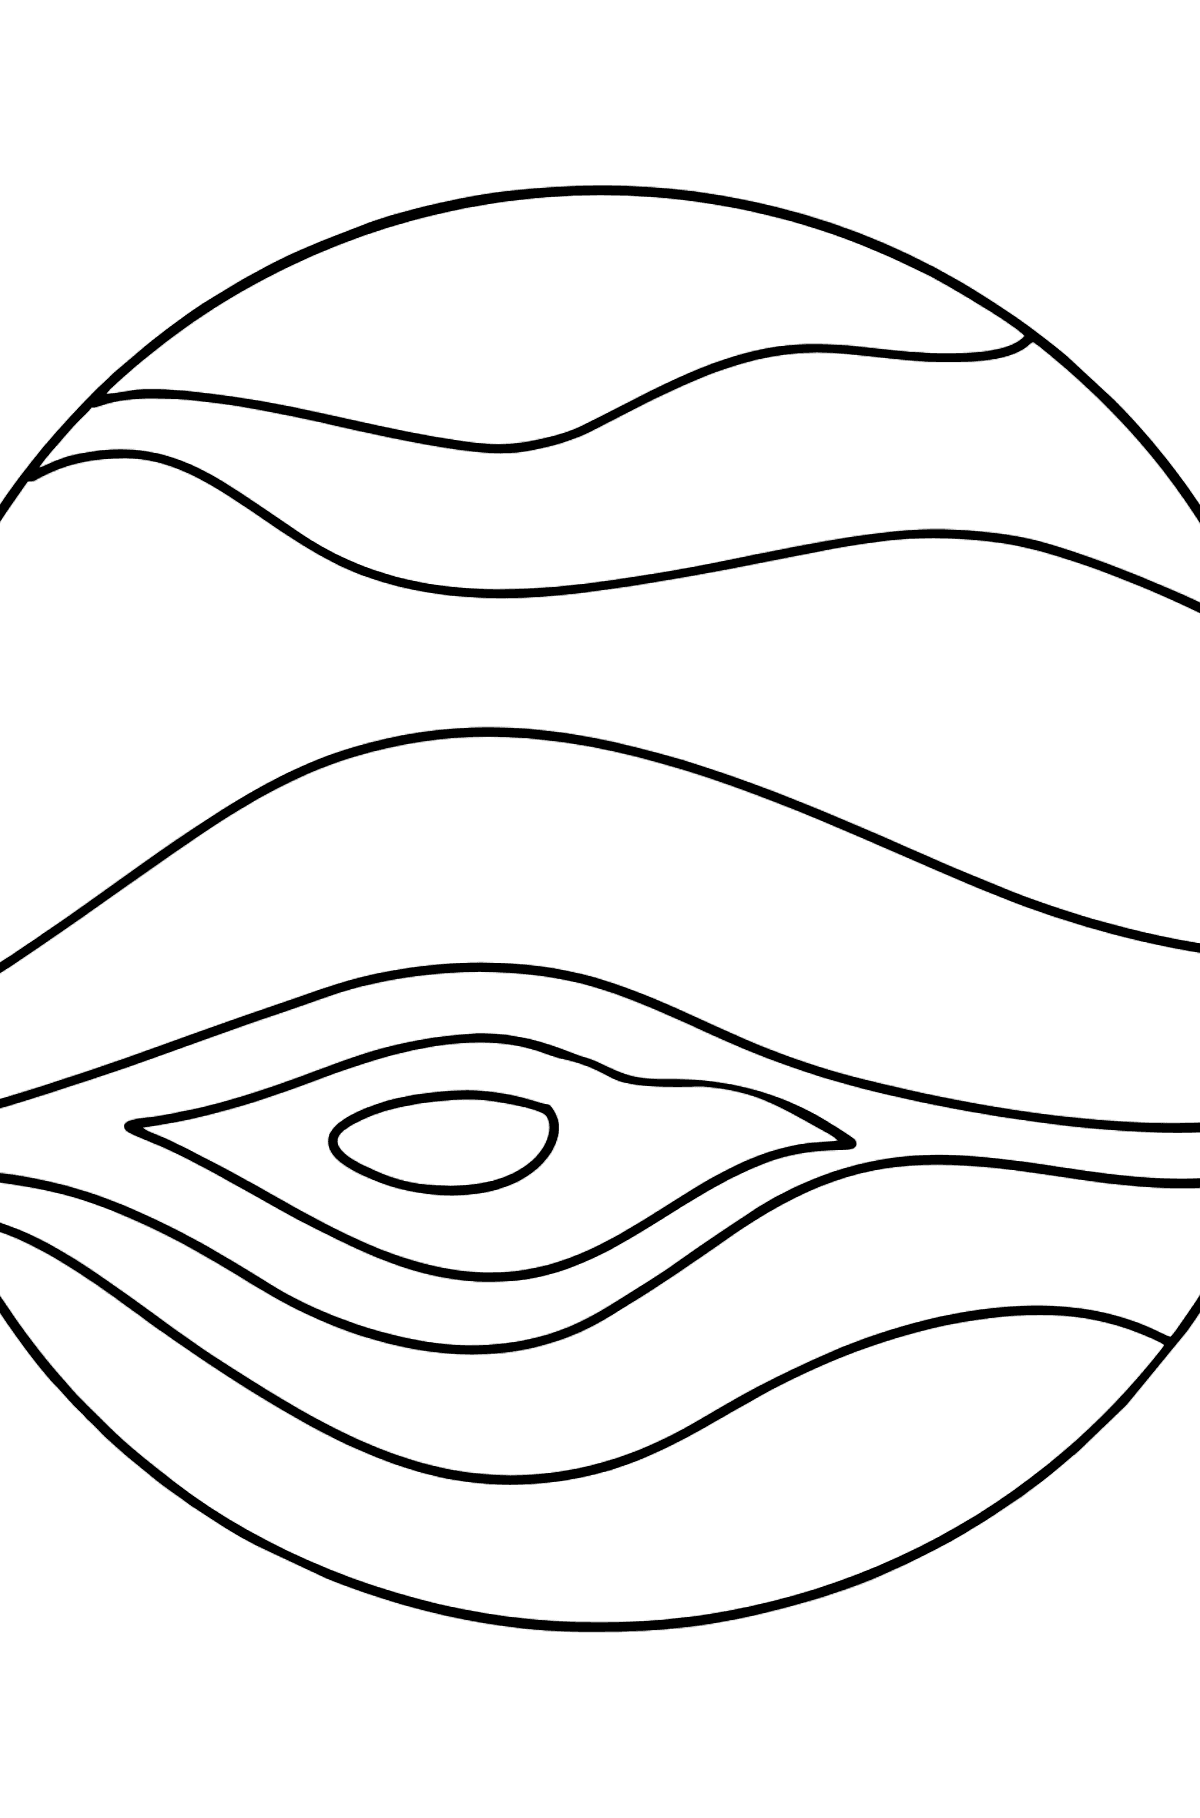 Jupiter coloring page - Coloring Pages for Kids